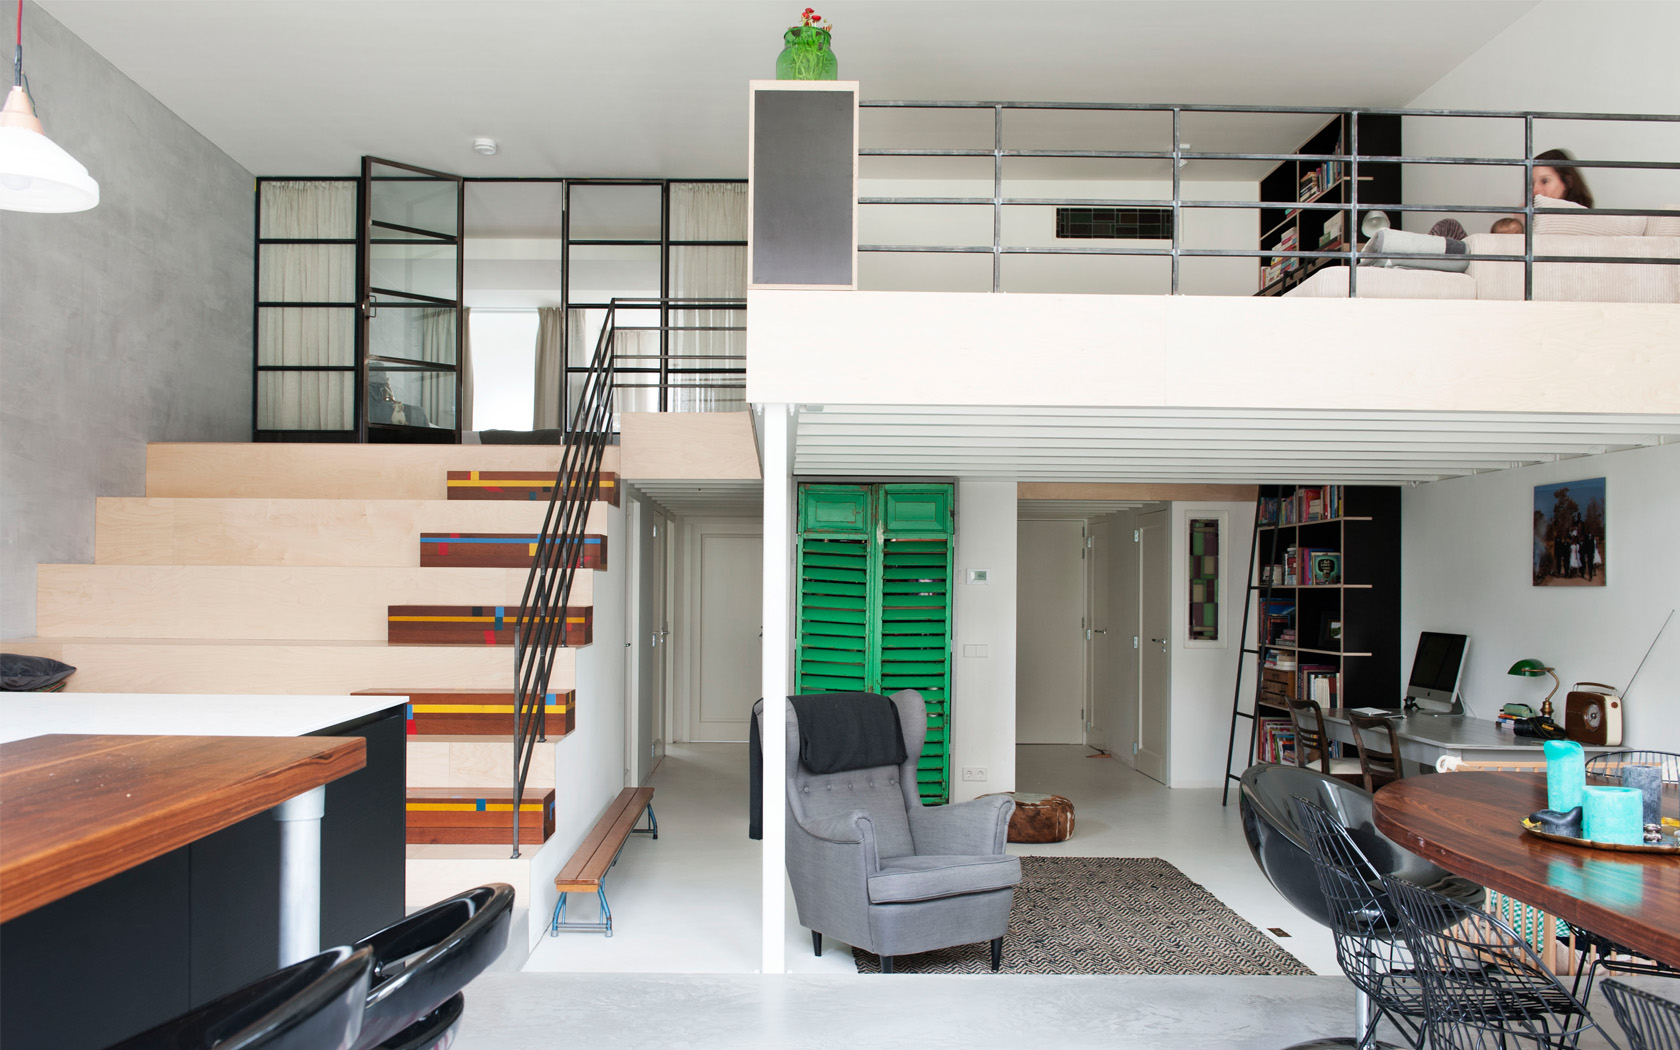 Within the empty casco,the families created their own homes. krft assisted 8 of the 24 families in their design.